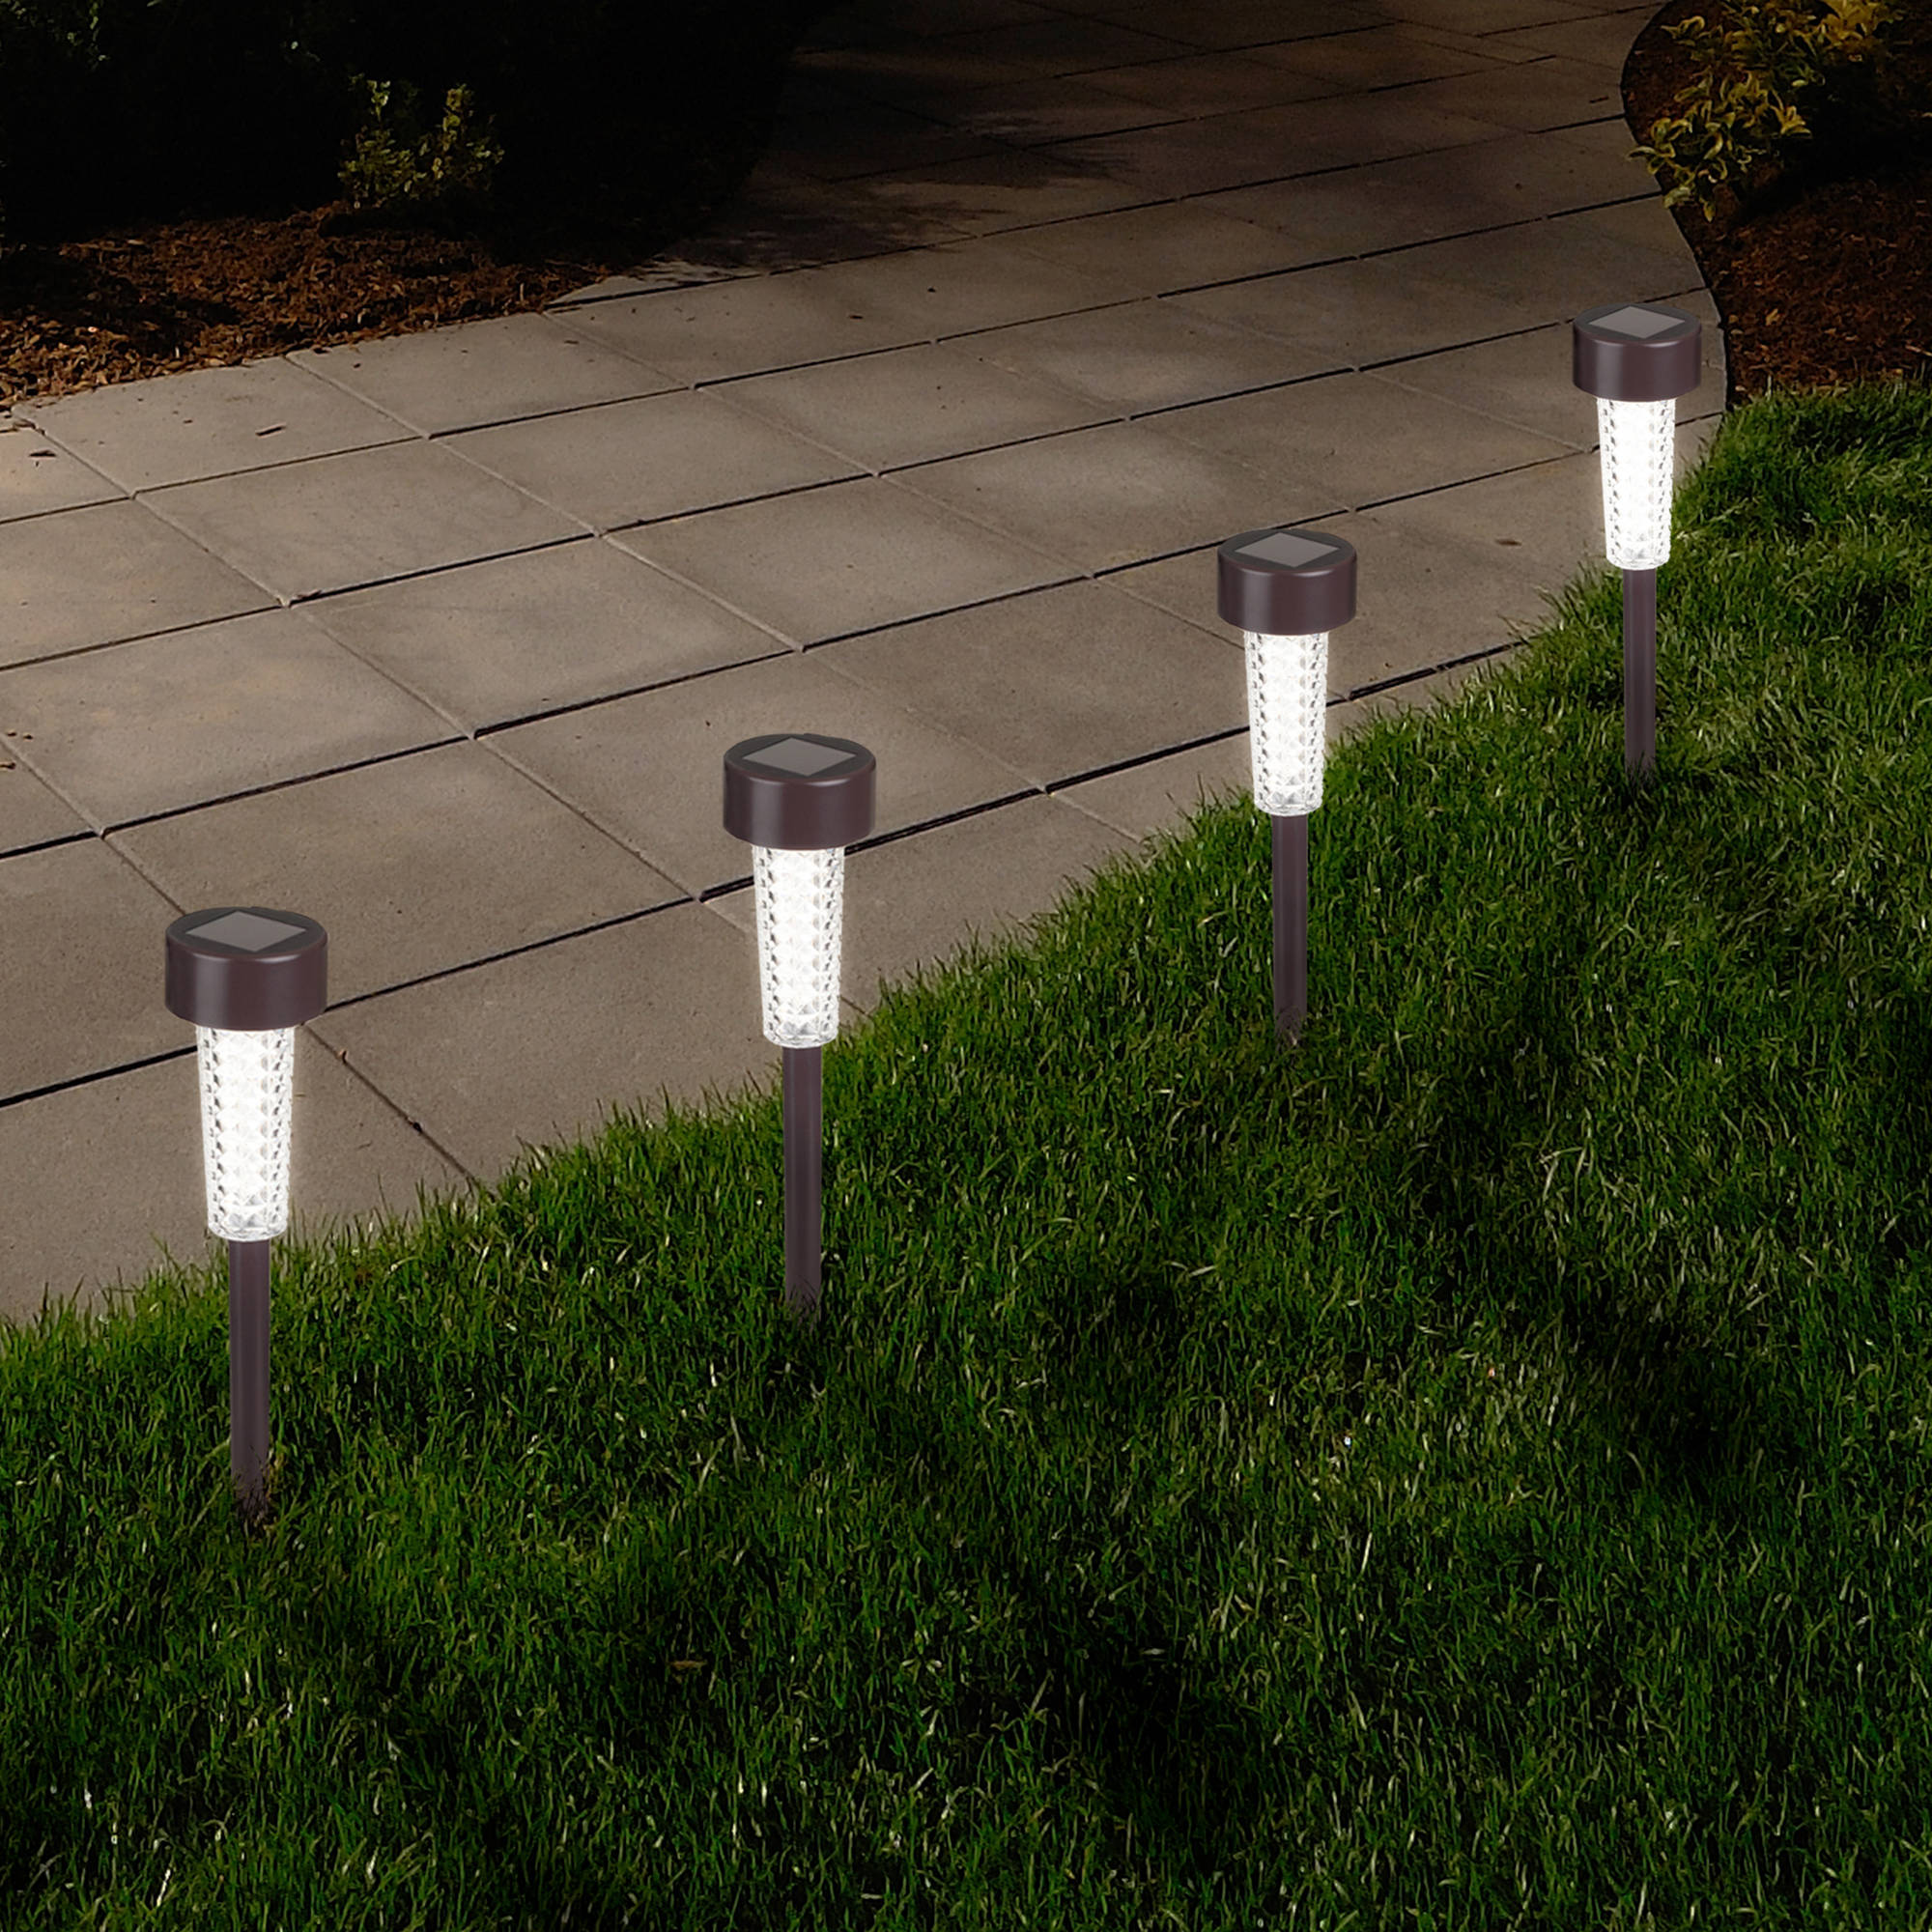 Solar Powered Lights (Set of 6)- LED Outdoor Stake Spotlight Fixture for Gardens,... by Trademark Global LLC